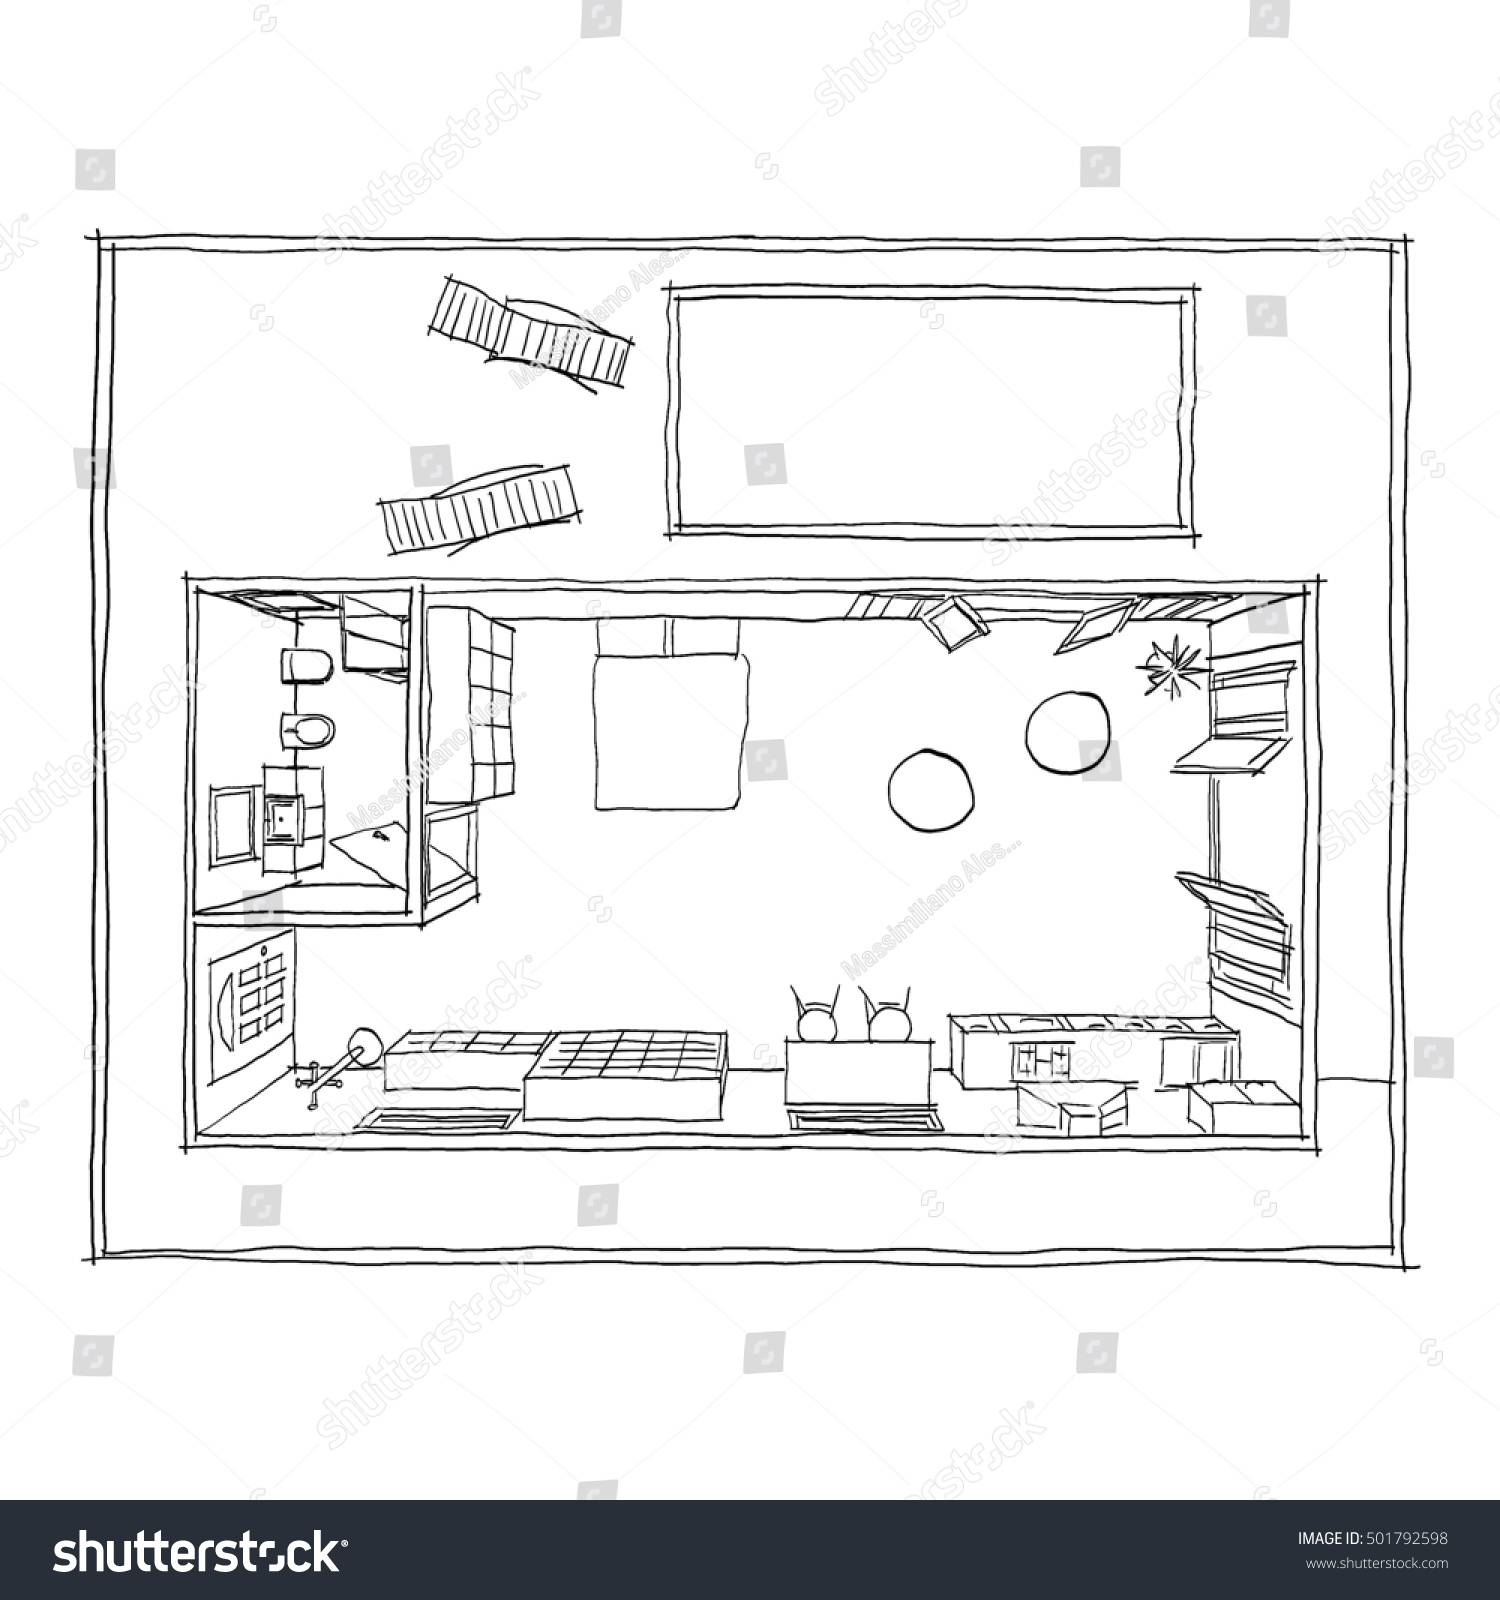 Black Pen Freehand Sketch Drawing Furnished Stock Illustration